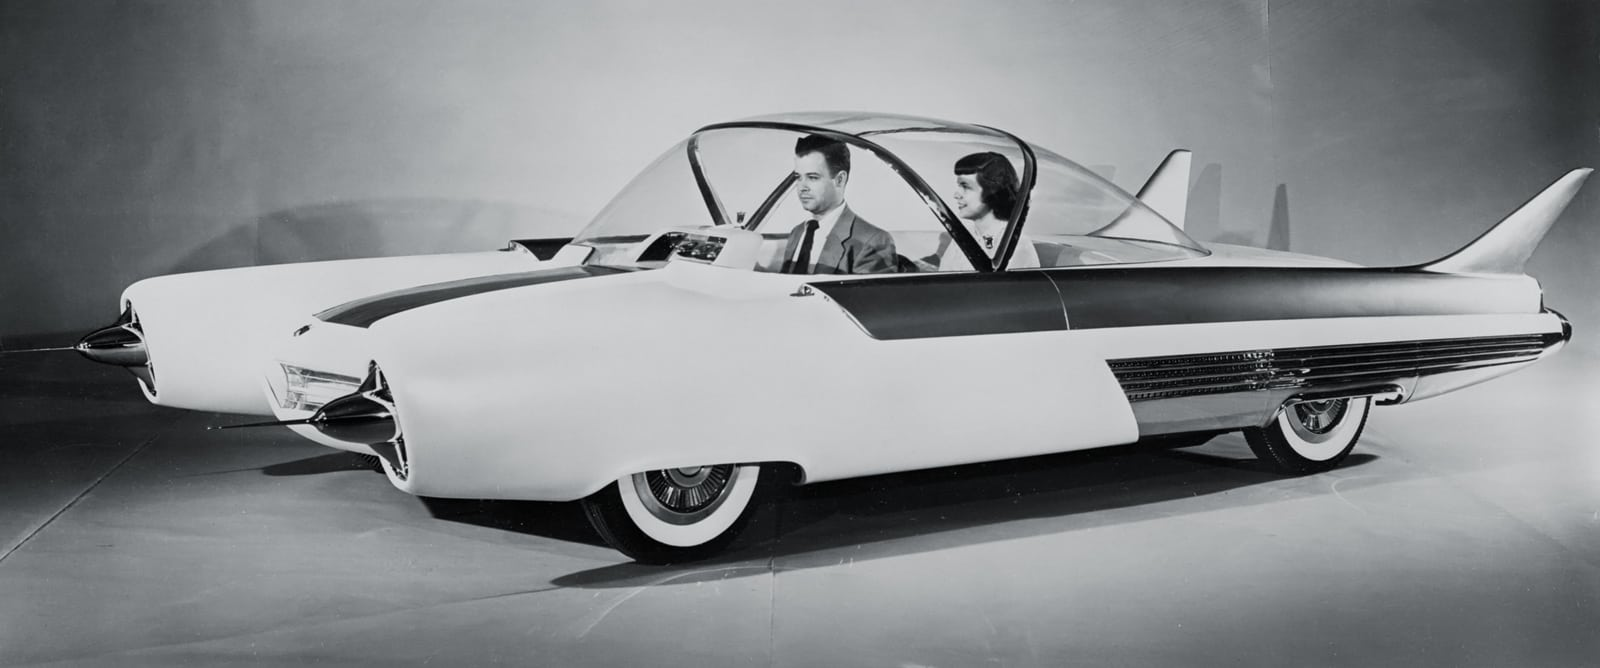 Concept Cars of the 50's and 60's - Nissan Titan Forum